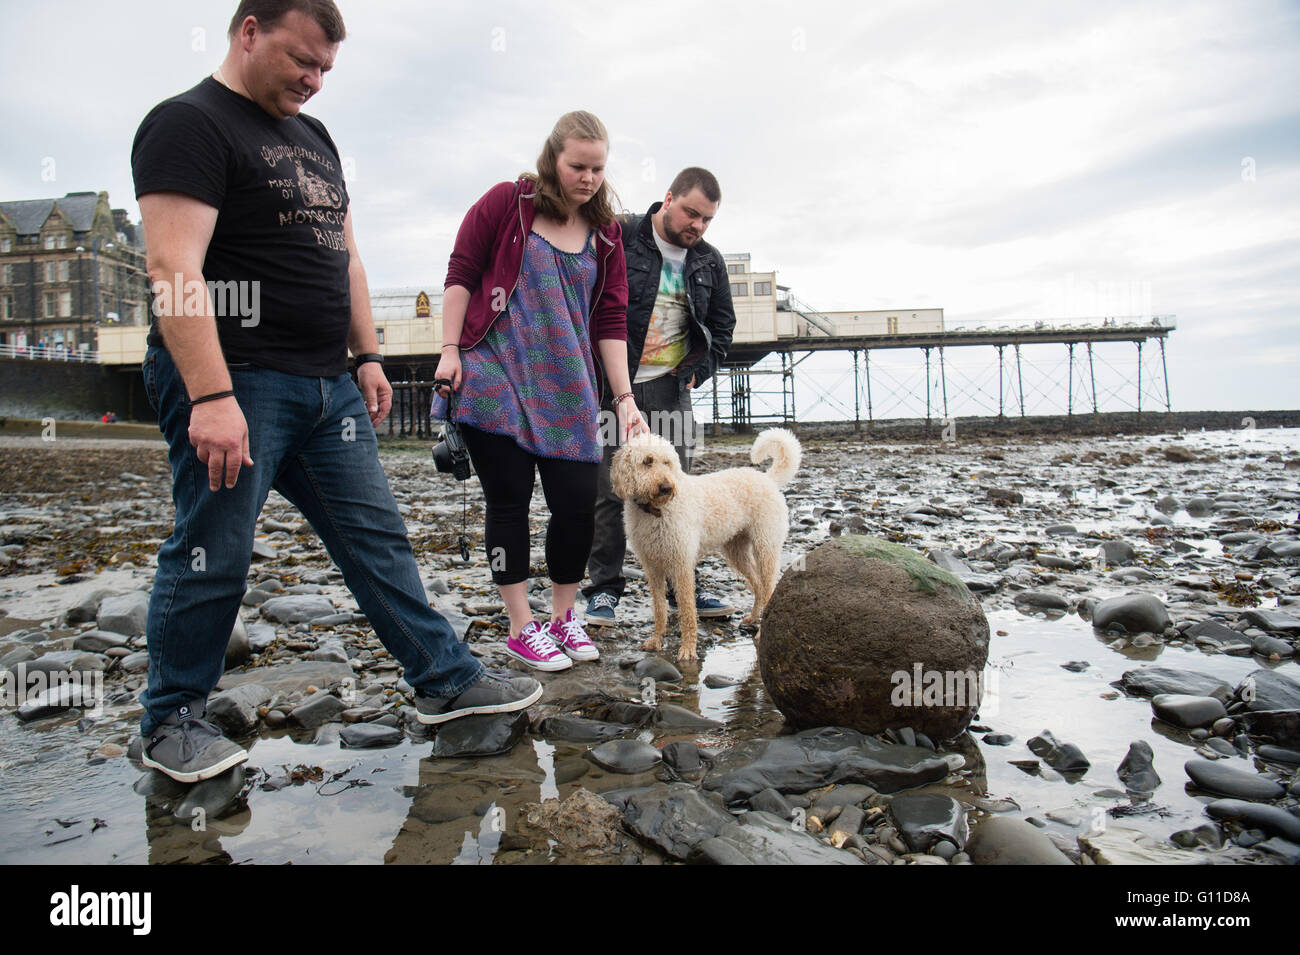 Aberystwyth Wales UK, Saturday 07 May 2016  Mystery object washes up on the beach at Aberystwyth.   After a winter - Stock Image